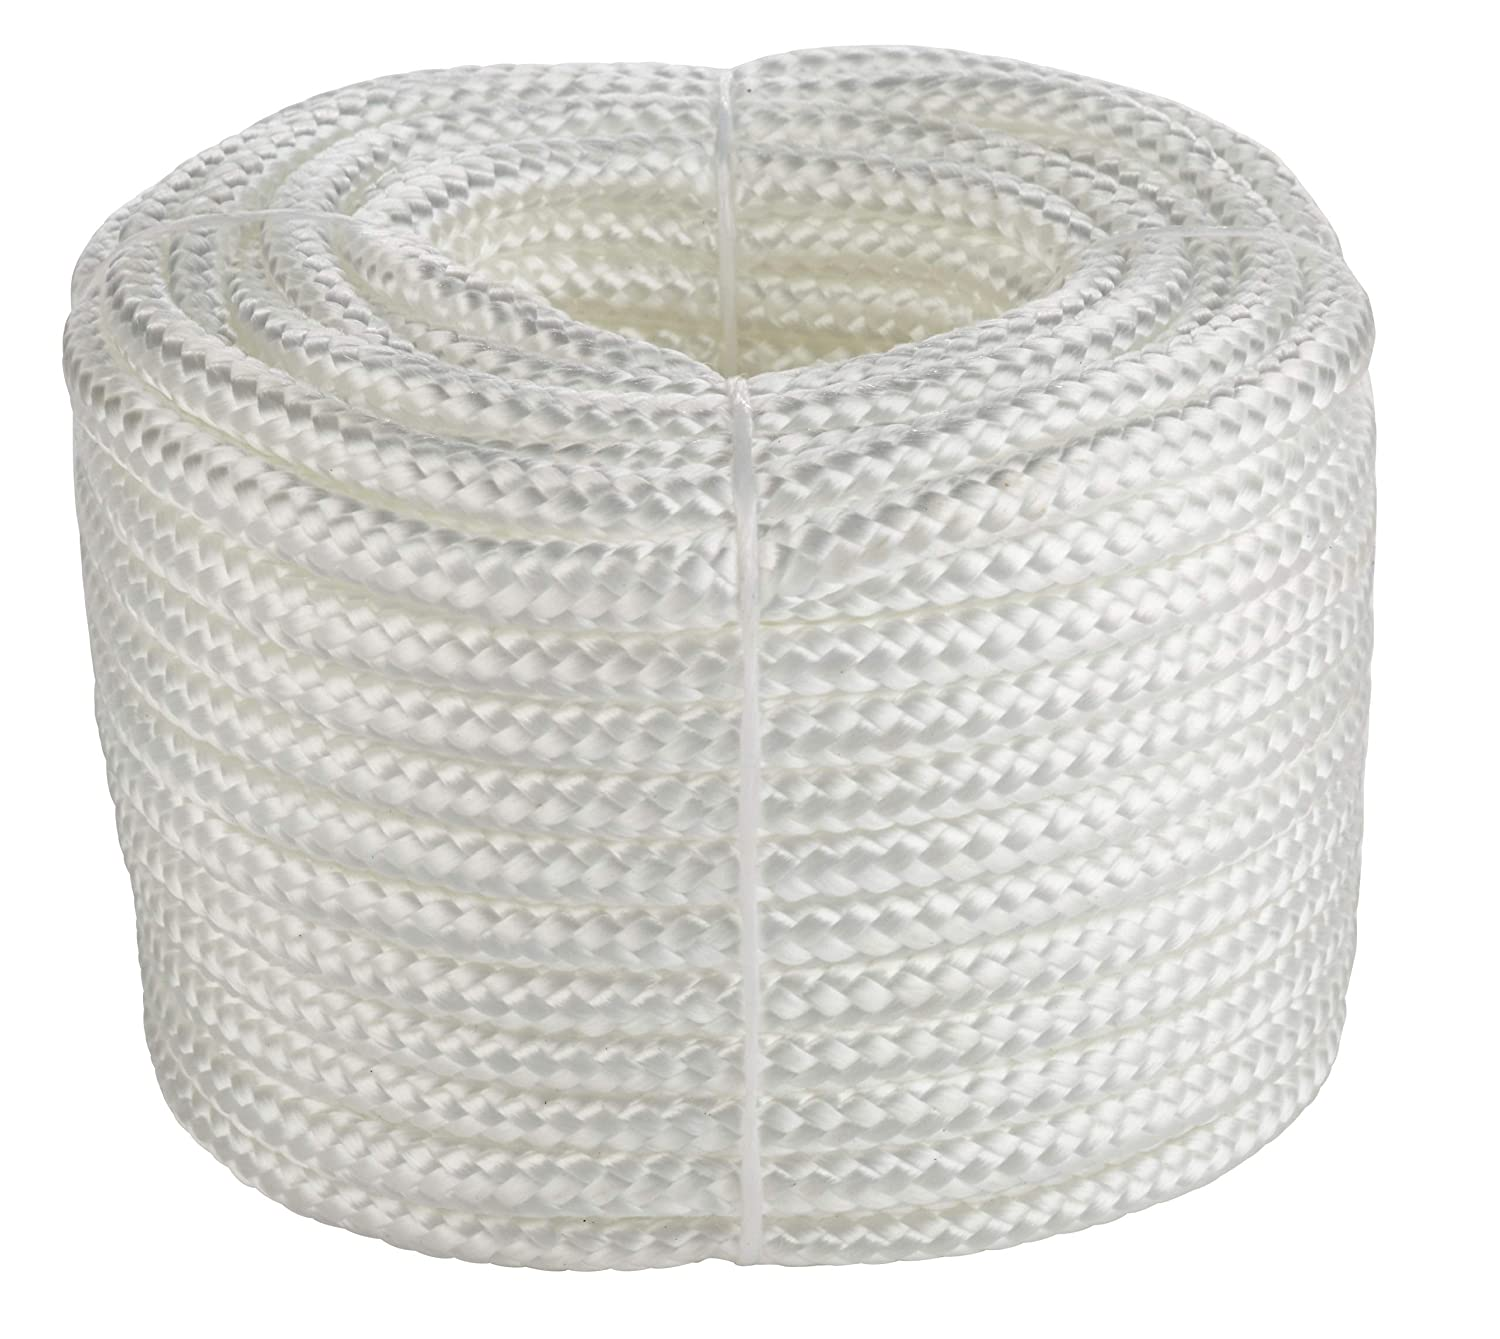 FD-Workstuff ® 20m x 6mm 16-Ply Braided Poly Rope - White FD-Workstuff ®